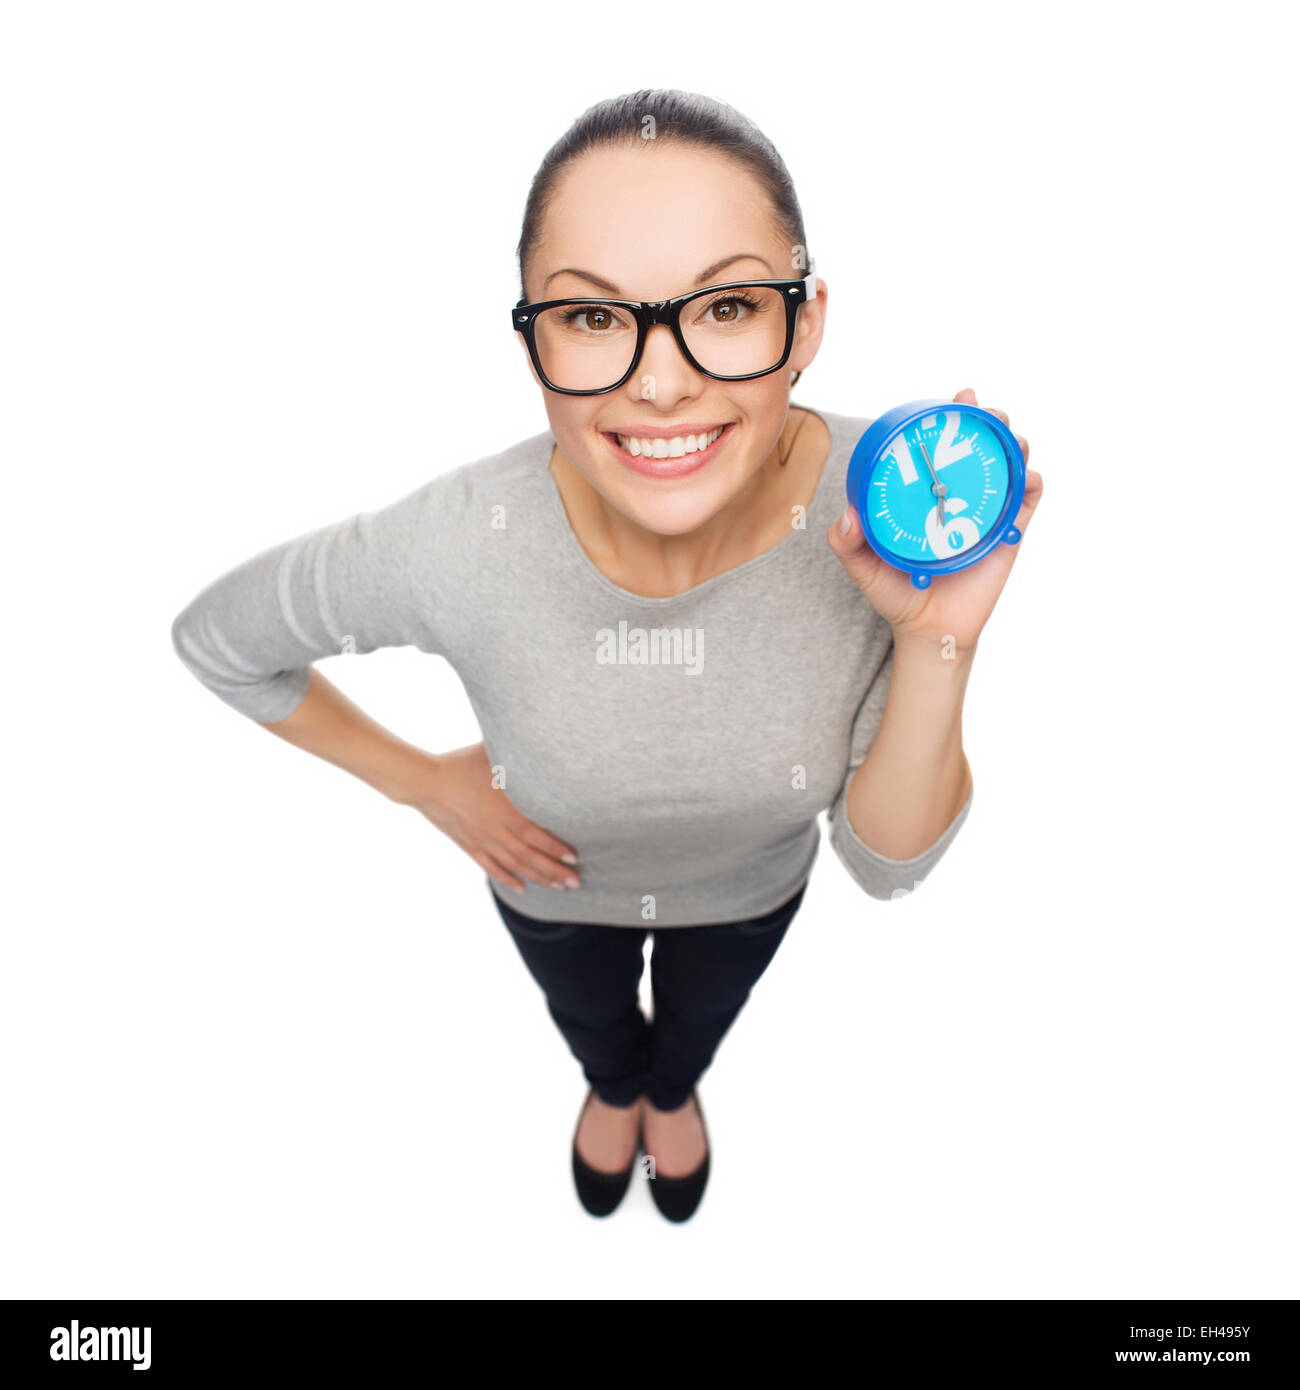 smiling woman in eyeglasses with blue clock - Stock Image